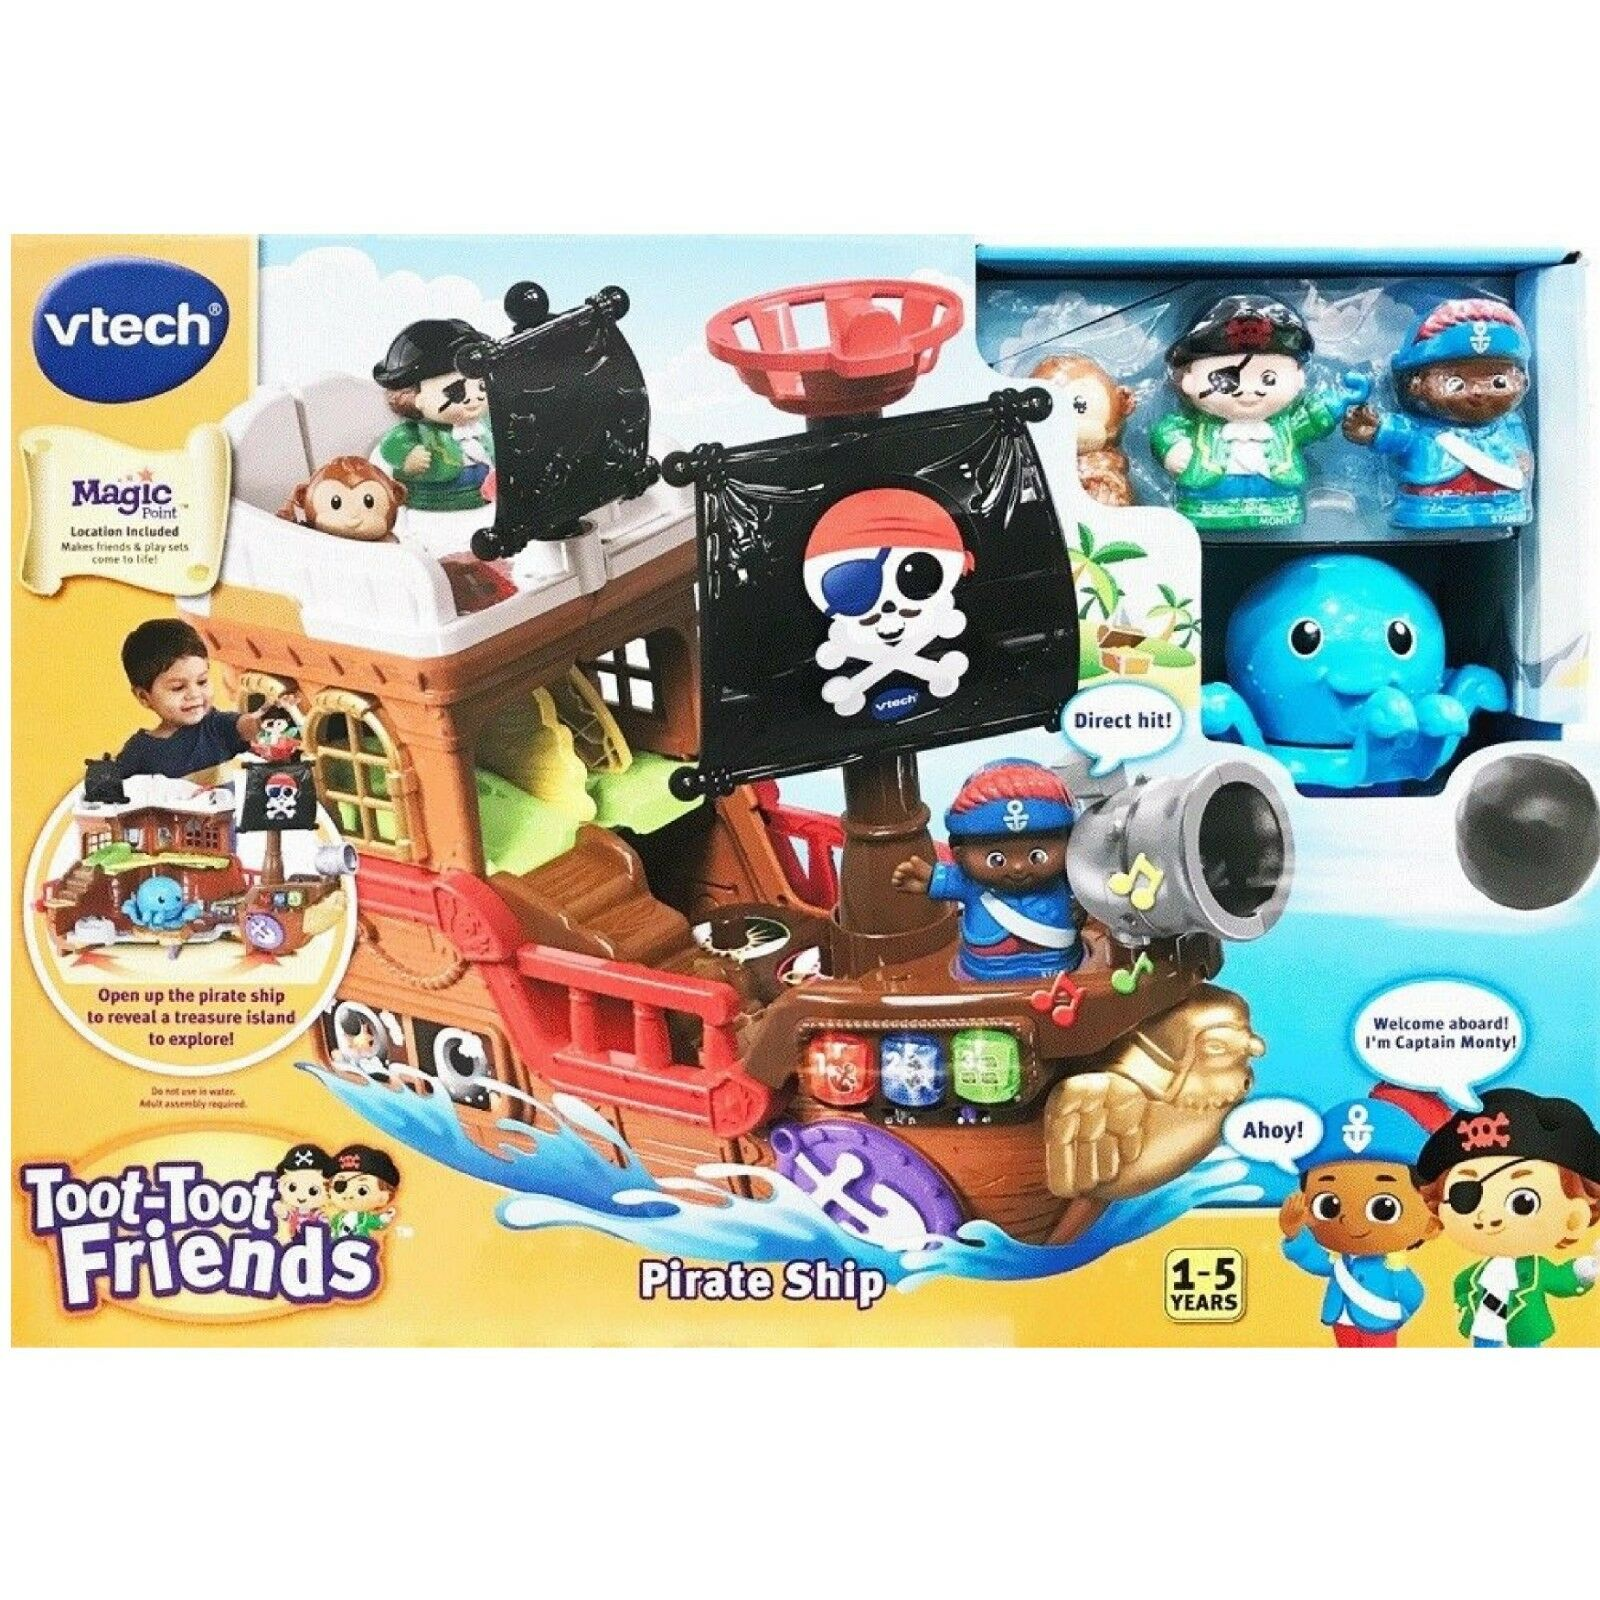 Vtech Toot-Toot Friends Kingdom Pirate Ship Ages 1-5 Brand New